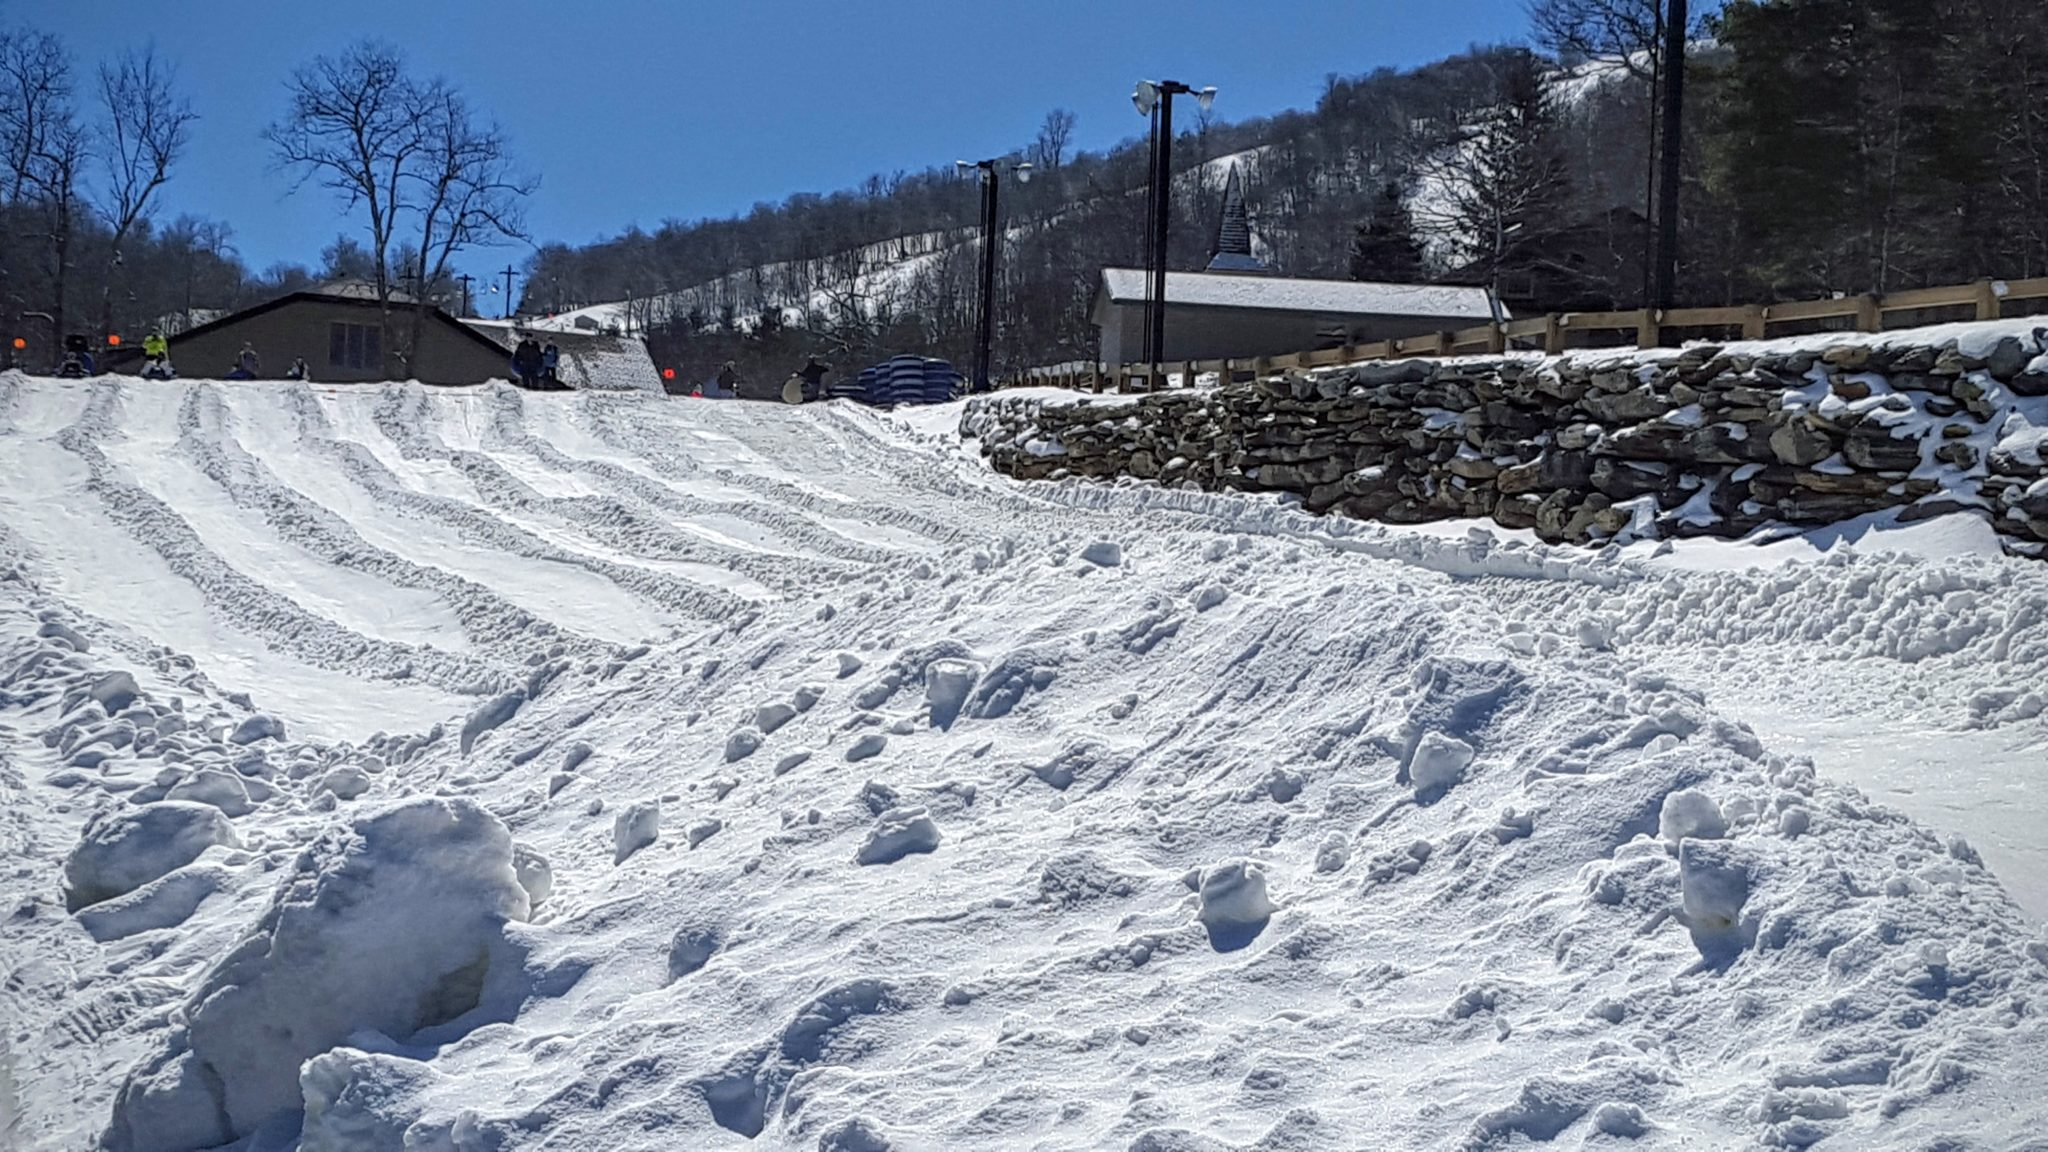 Spring Skiing at Beech Mountain Means Deal Time!